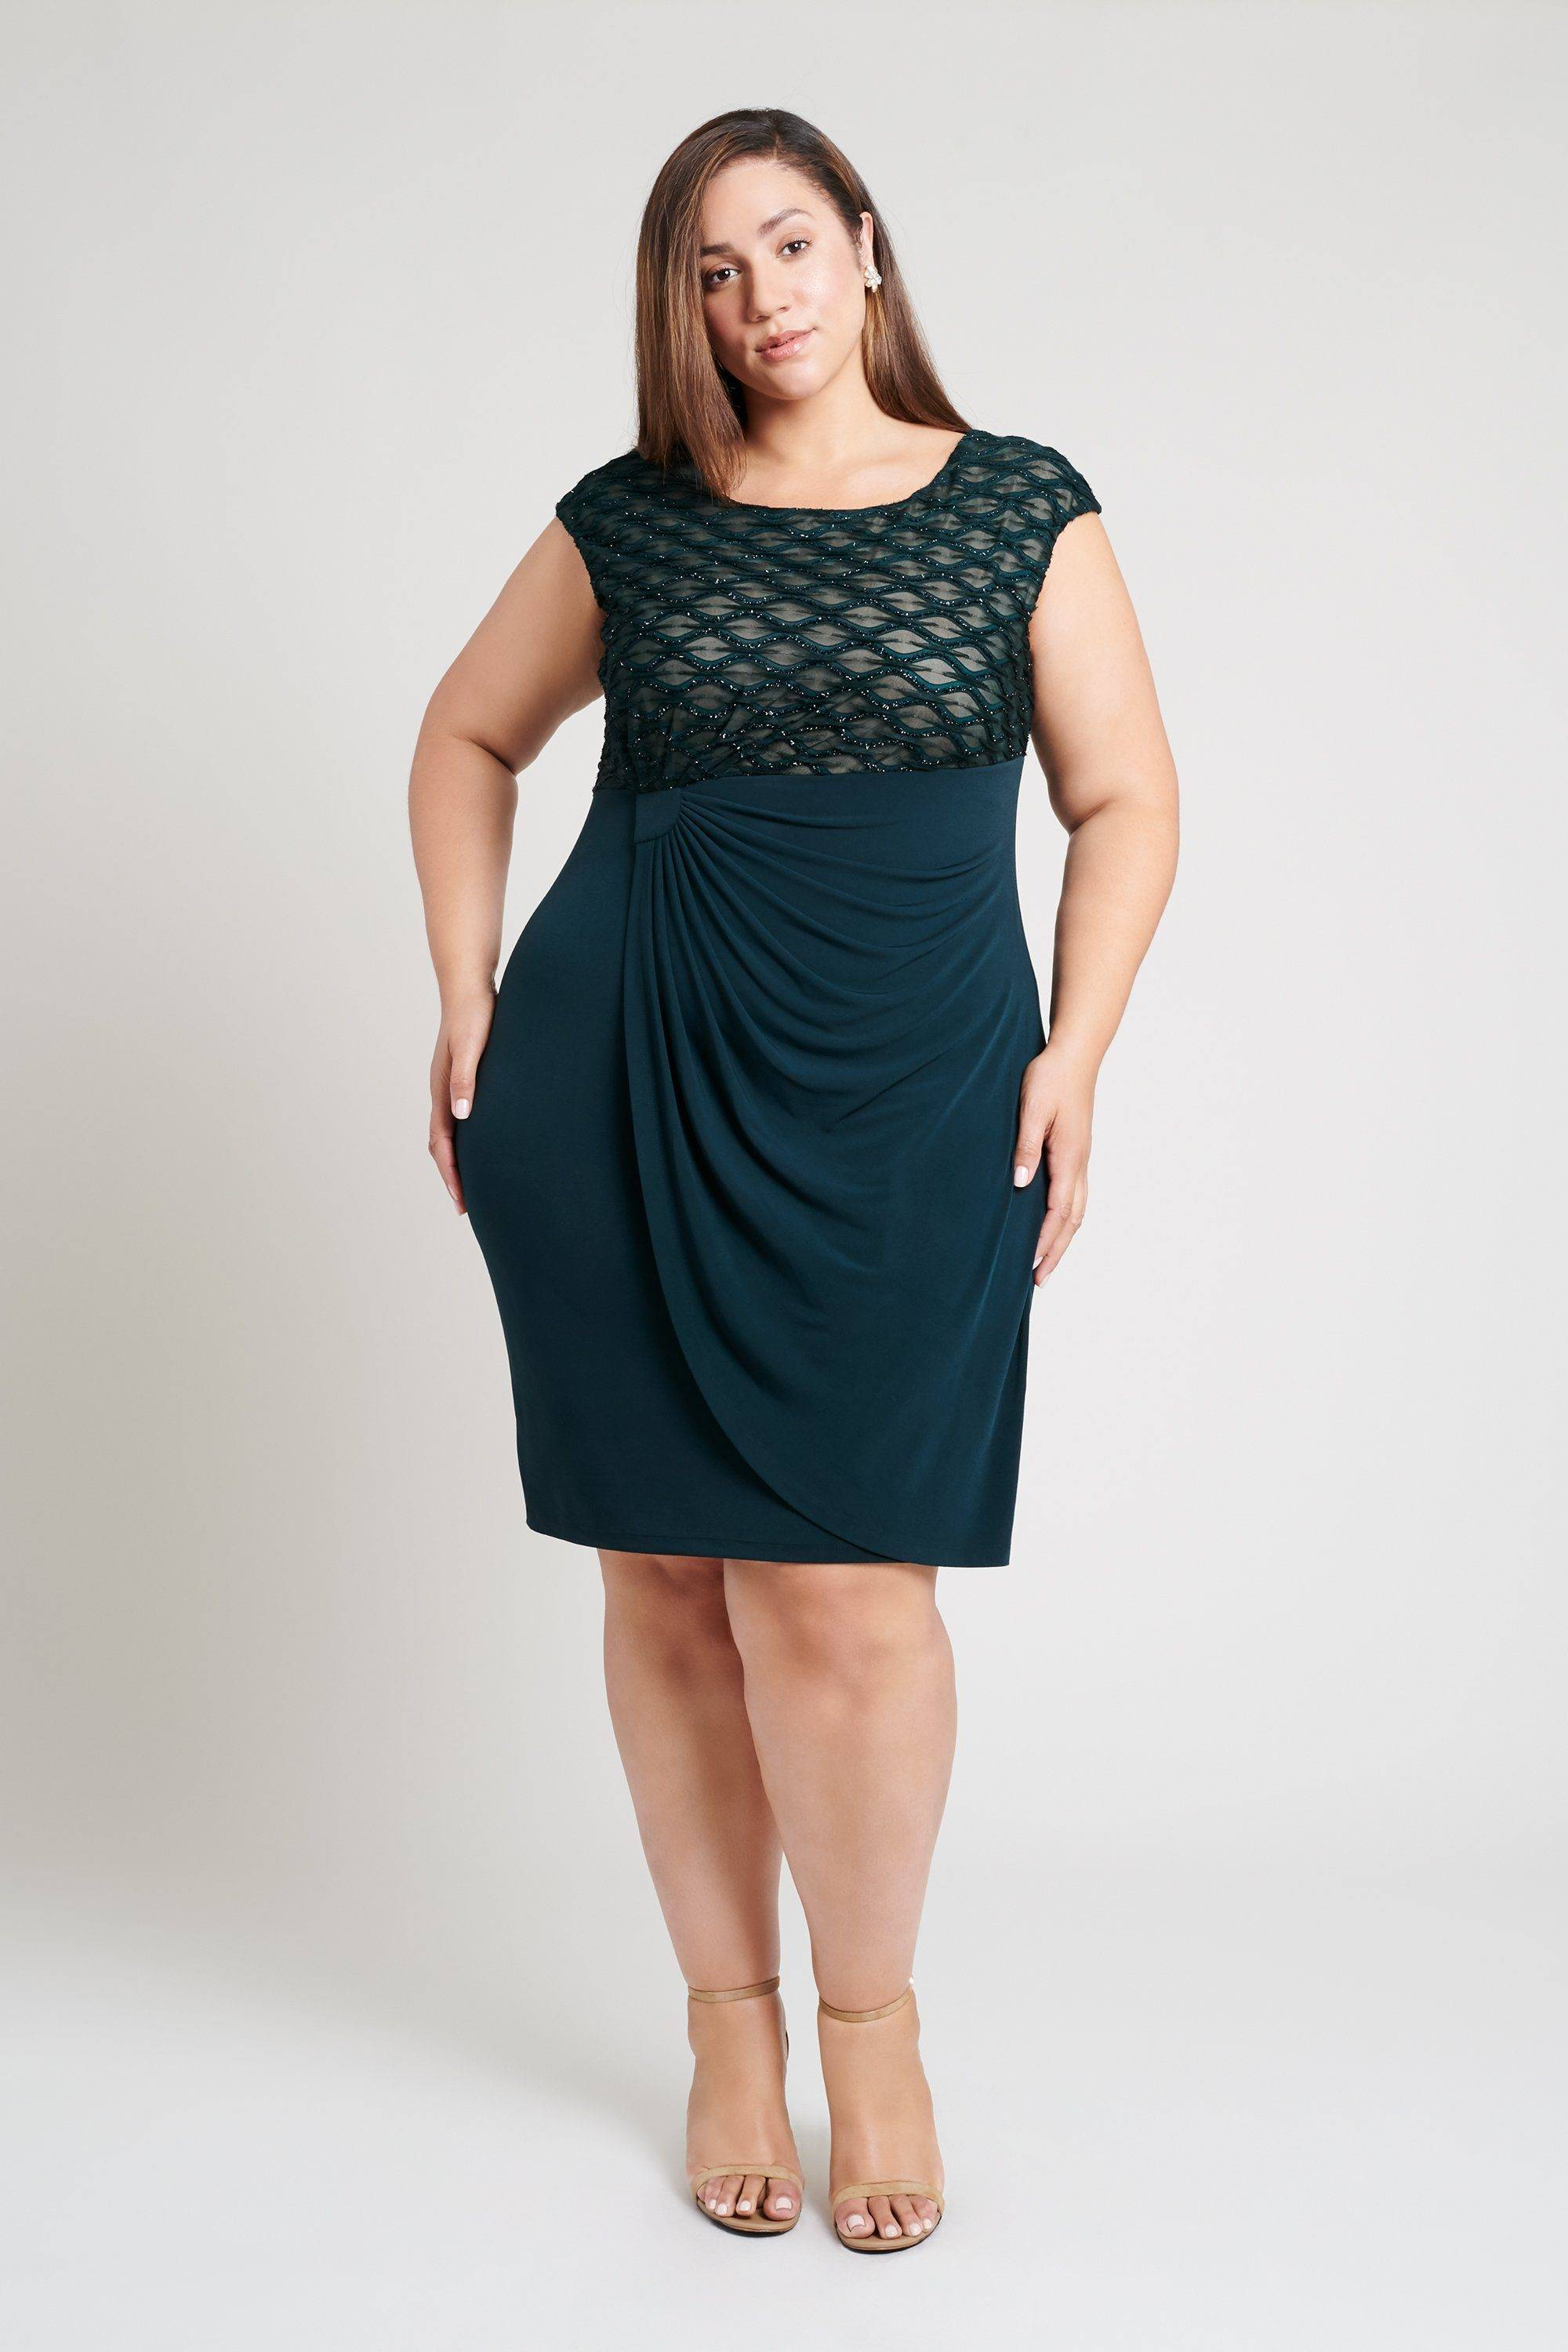 metallic-lace-dress-formal-special-occasion-plus-size-teal-womens-connected-apparel